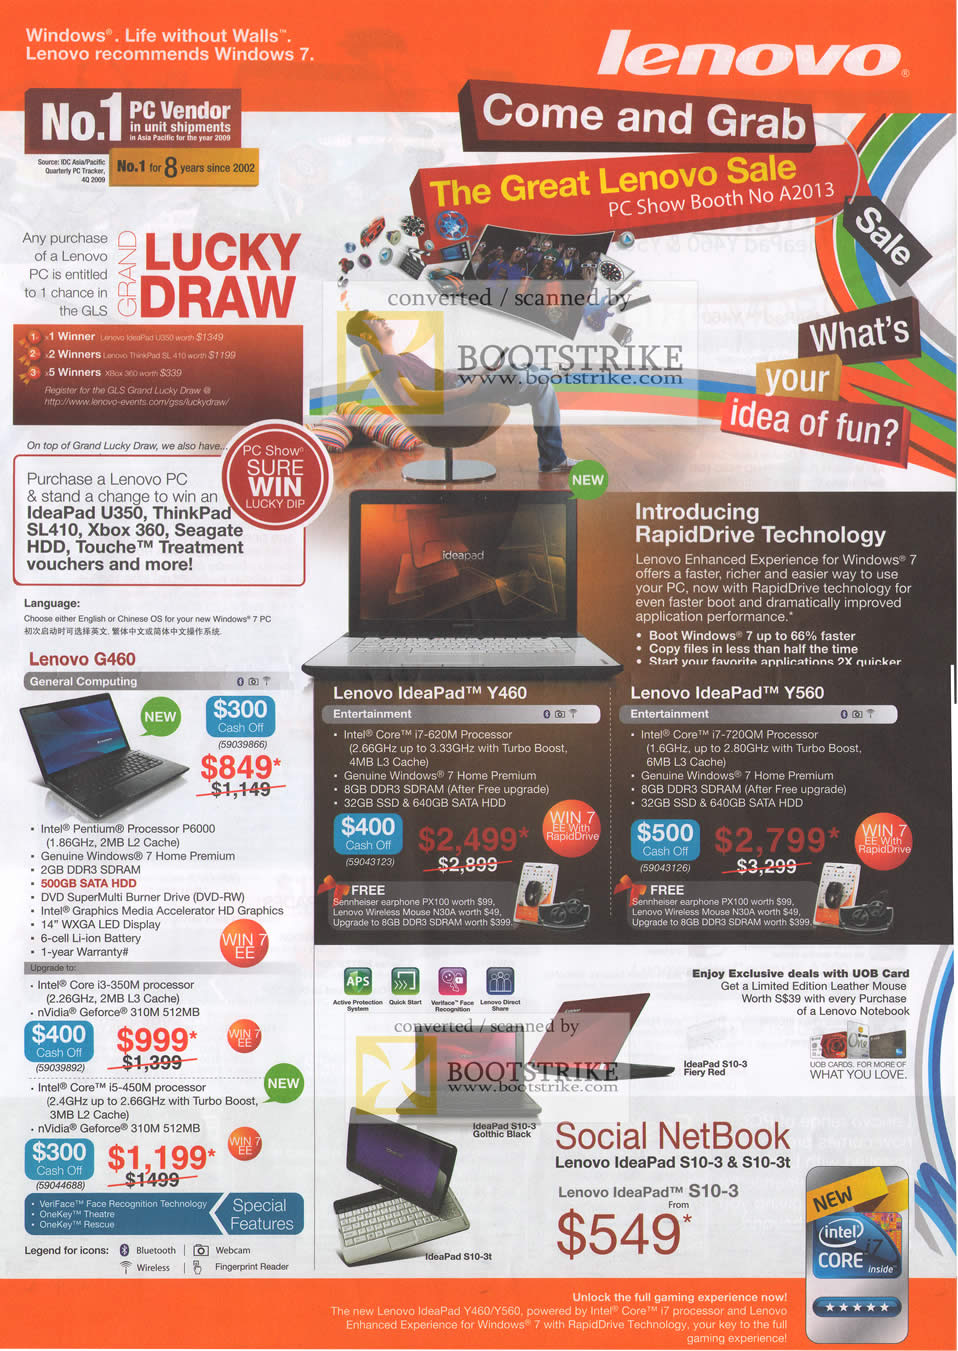 PC Show 2010 price list image brochure of Lenovo RapidDrive Notebooks IdeaPad Y460 G460 Netbook S10 3 3t